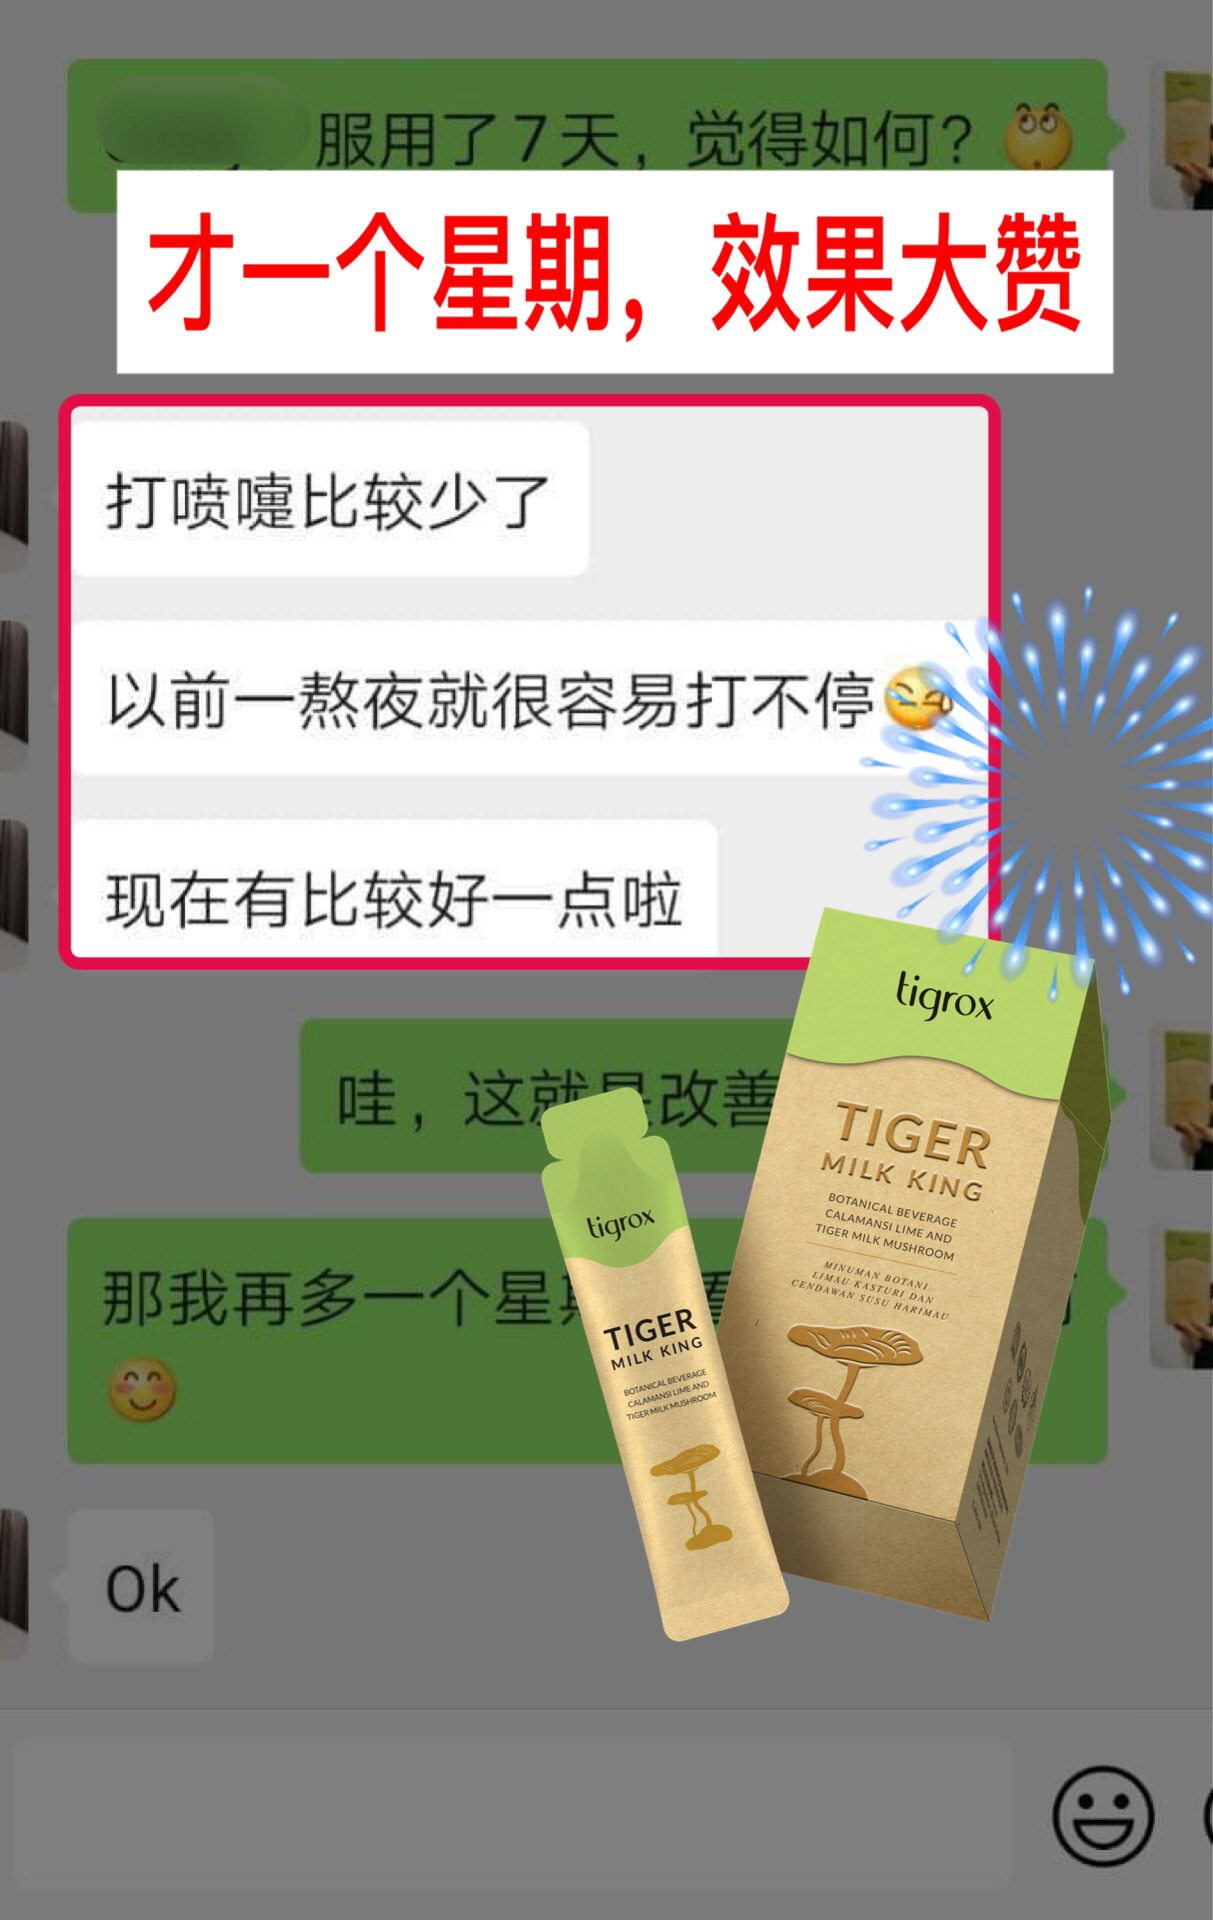 Wellous Tigrox Tiger Milk King Review Testimonial MyVpsGroup-11